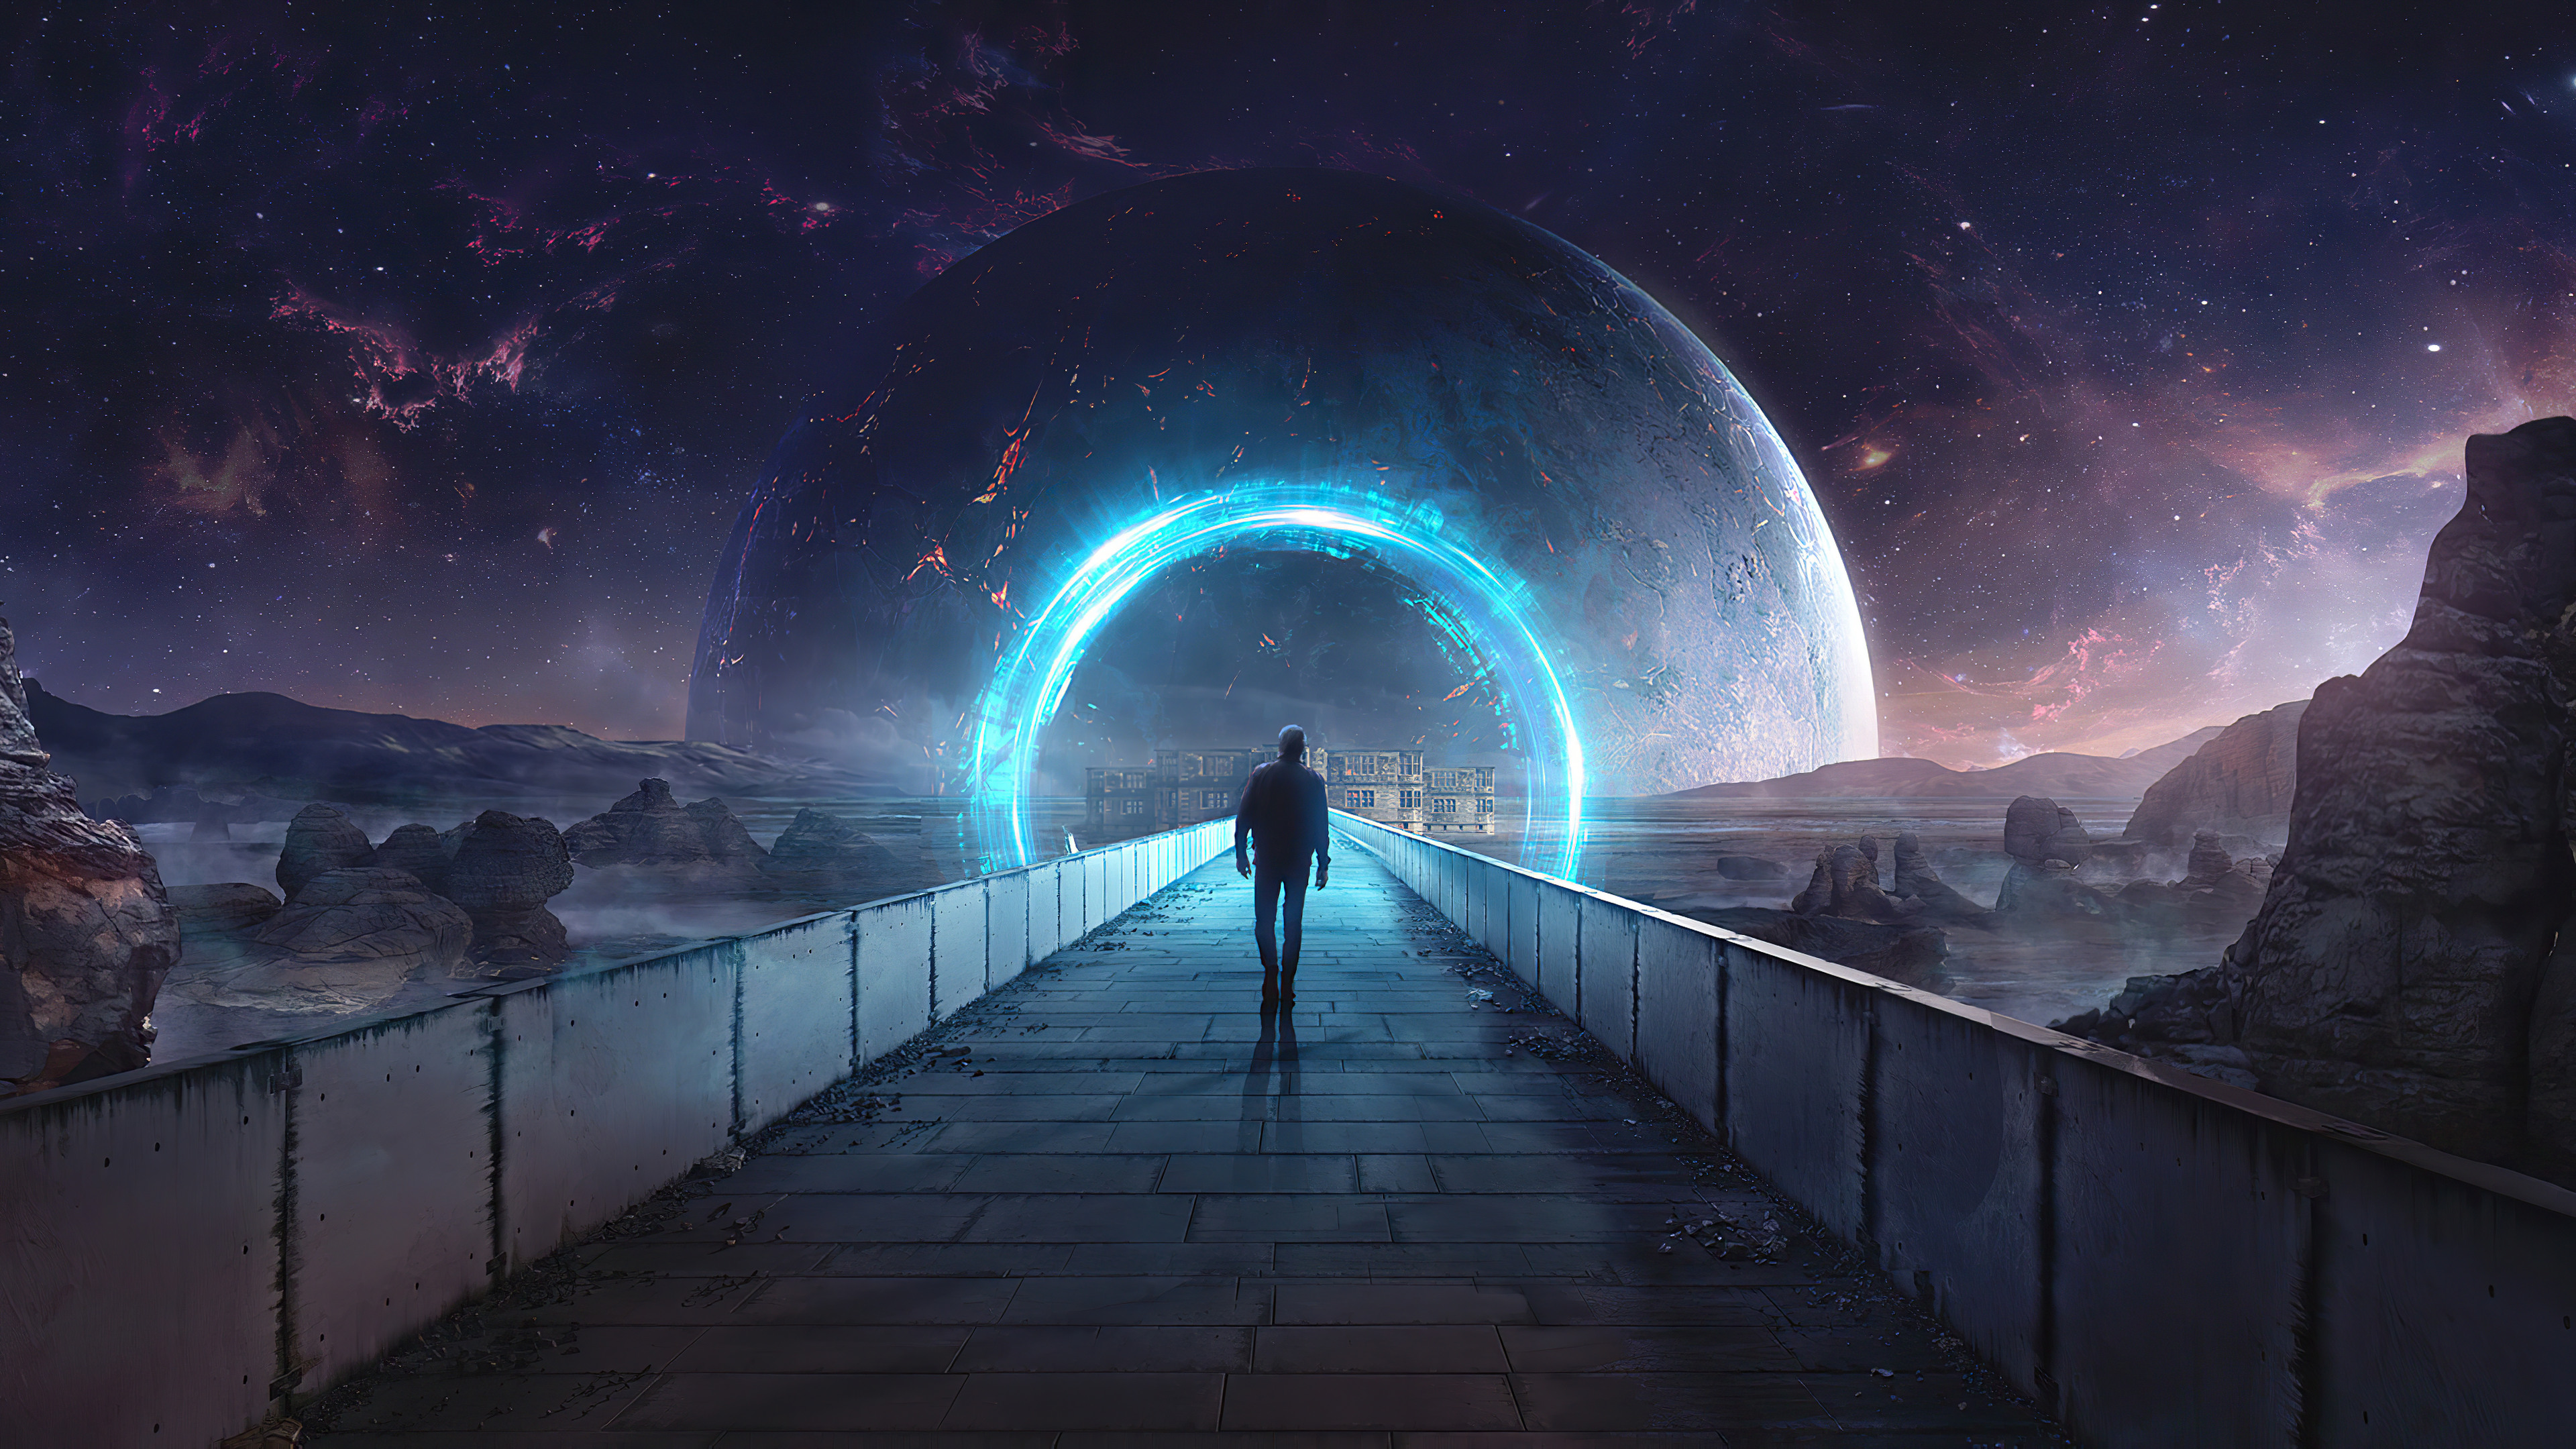 Man Walking Towards Space Portal 4k Ultra Hd Wallpaper Background Image 3840x2160 Id 1077714 Wallpaper Abyss